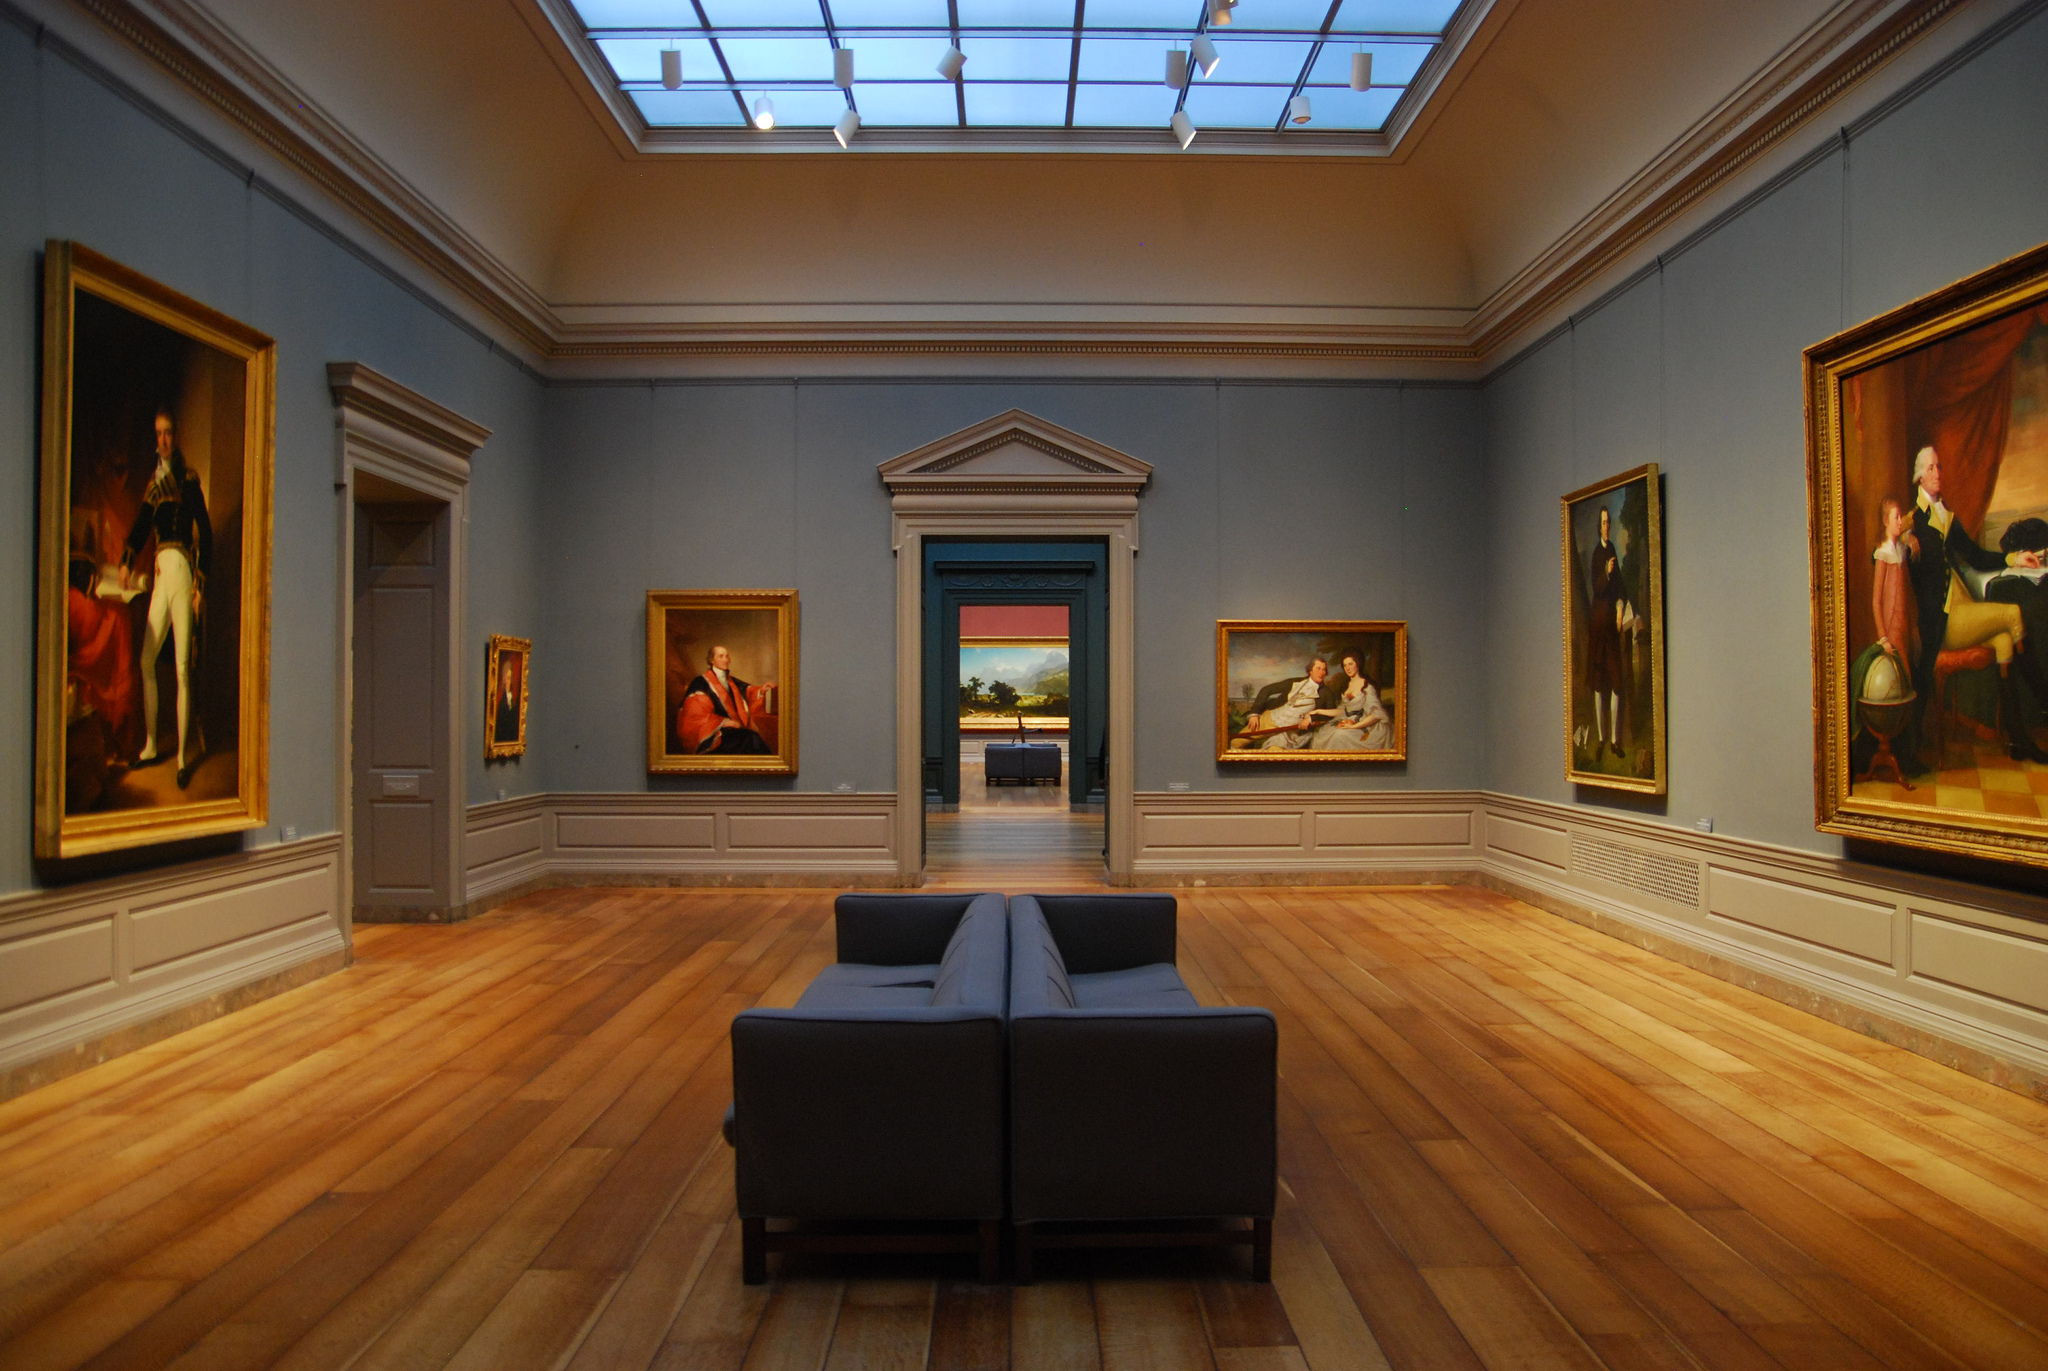 The American Gallery